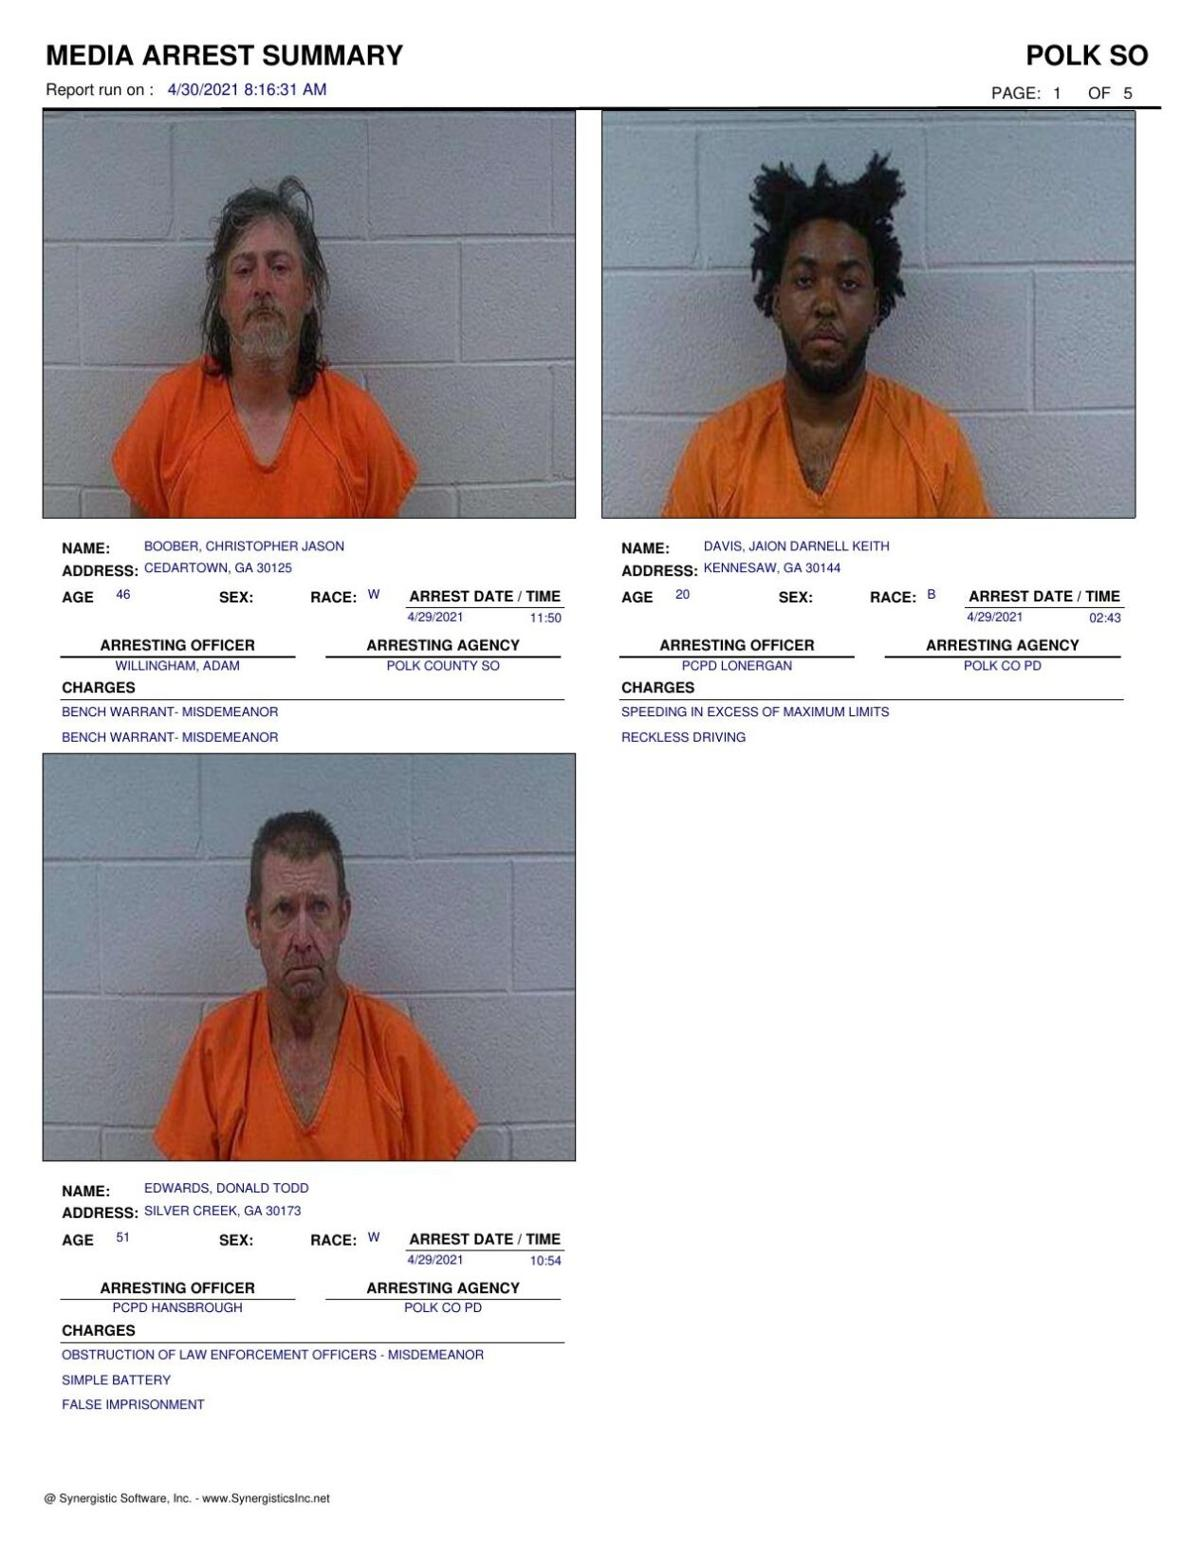 Polk County Jail Report for Friday, April 30